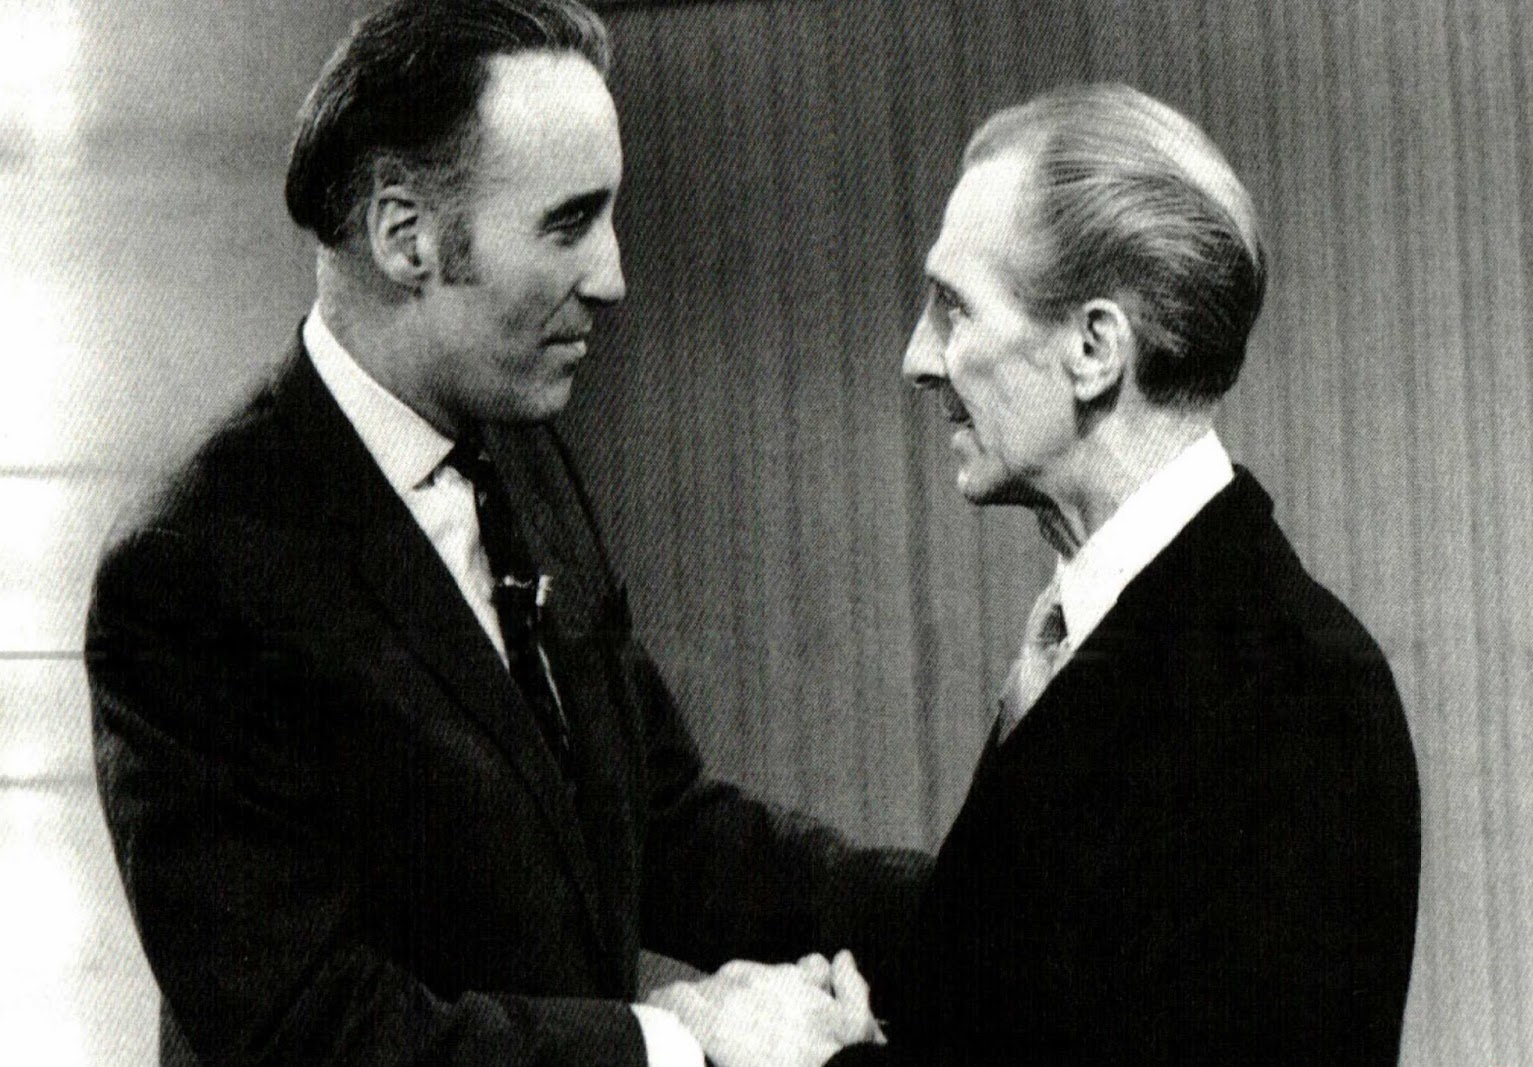 PETER CUSHING, AMICO-NEMICO DI CHRISTOPHER LEE